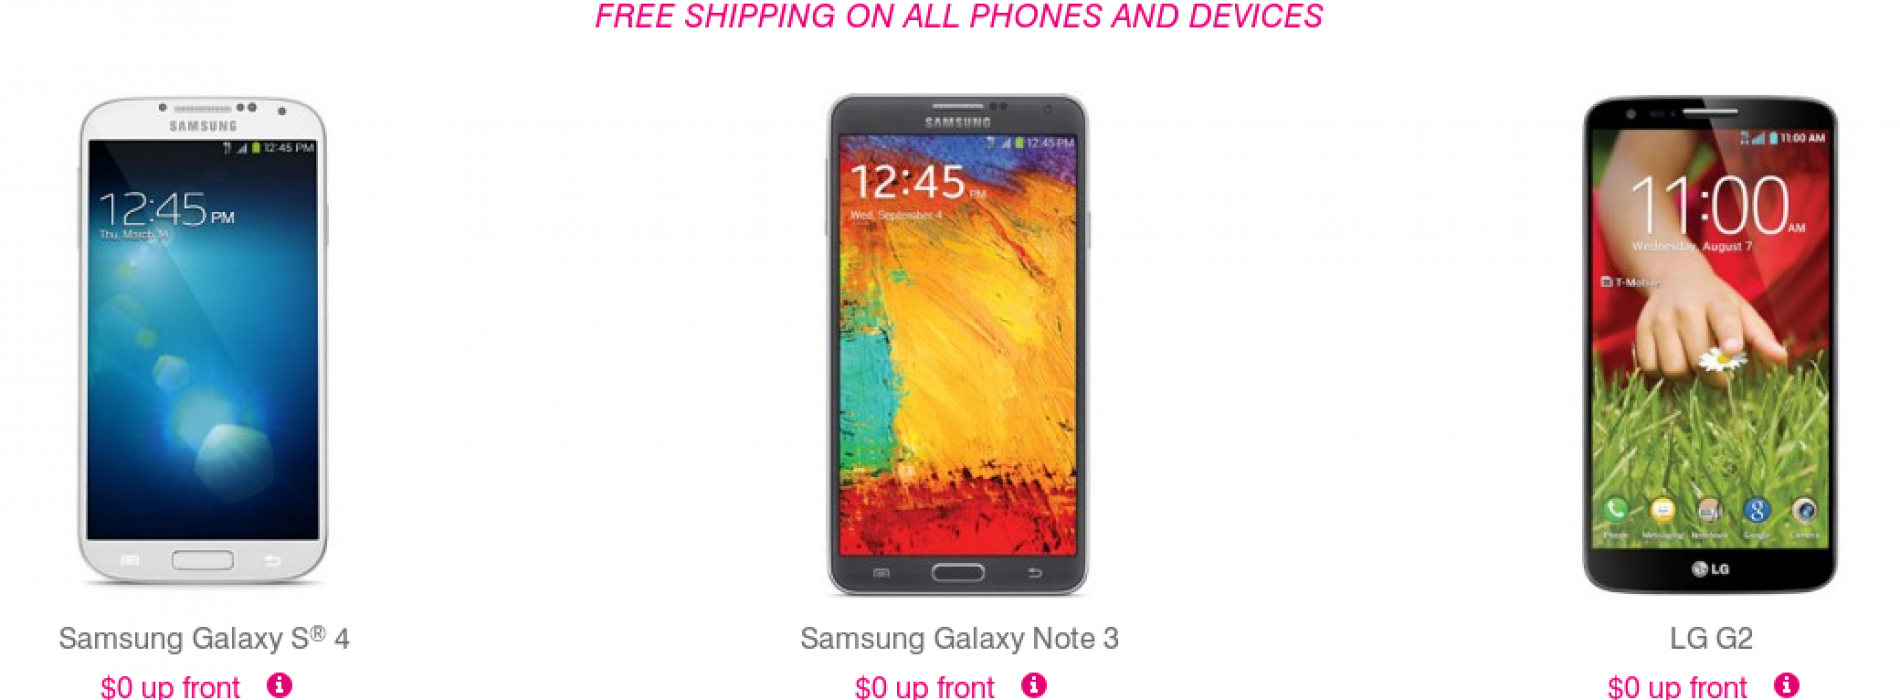 T-Mobile goes zero down for LG G2, Samsung Galaxy Note 3, and others